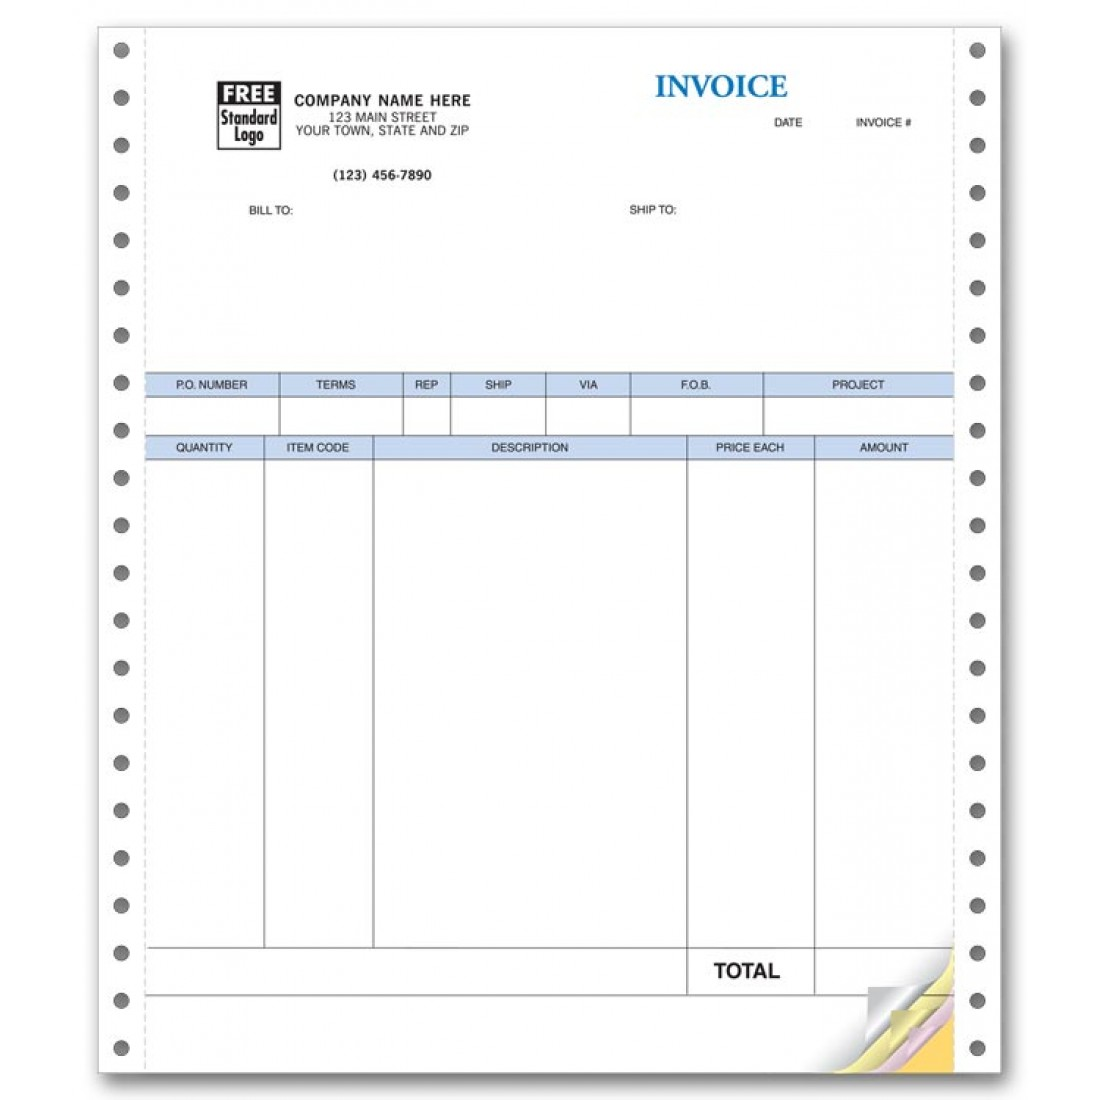 Continuous Product Invoice with Packing List compatible with QuickBooks